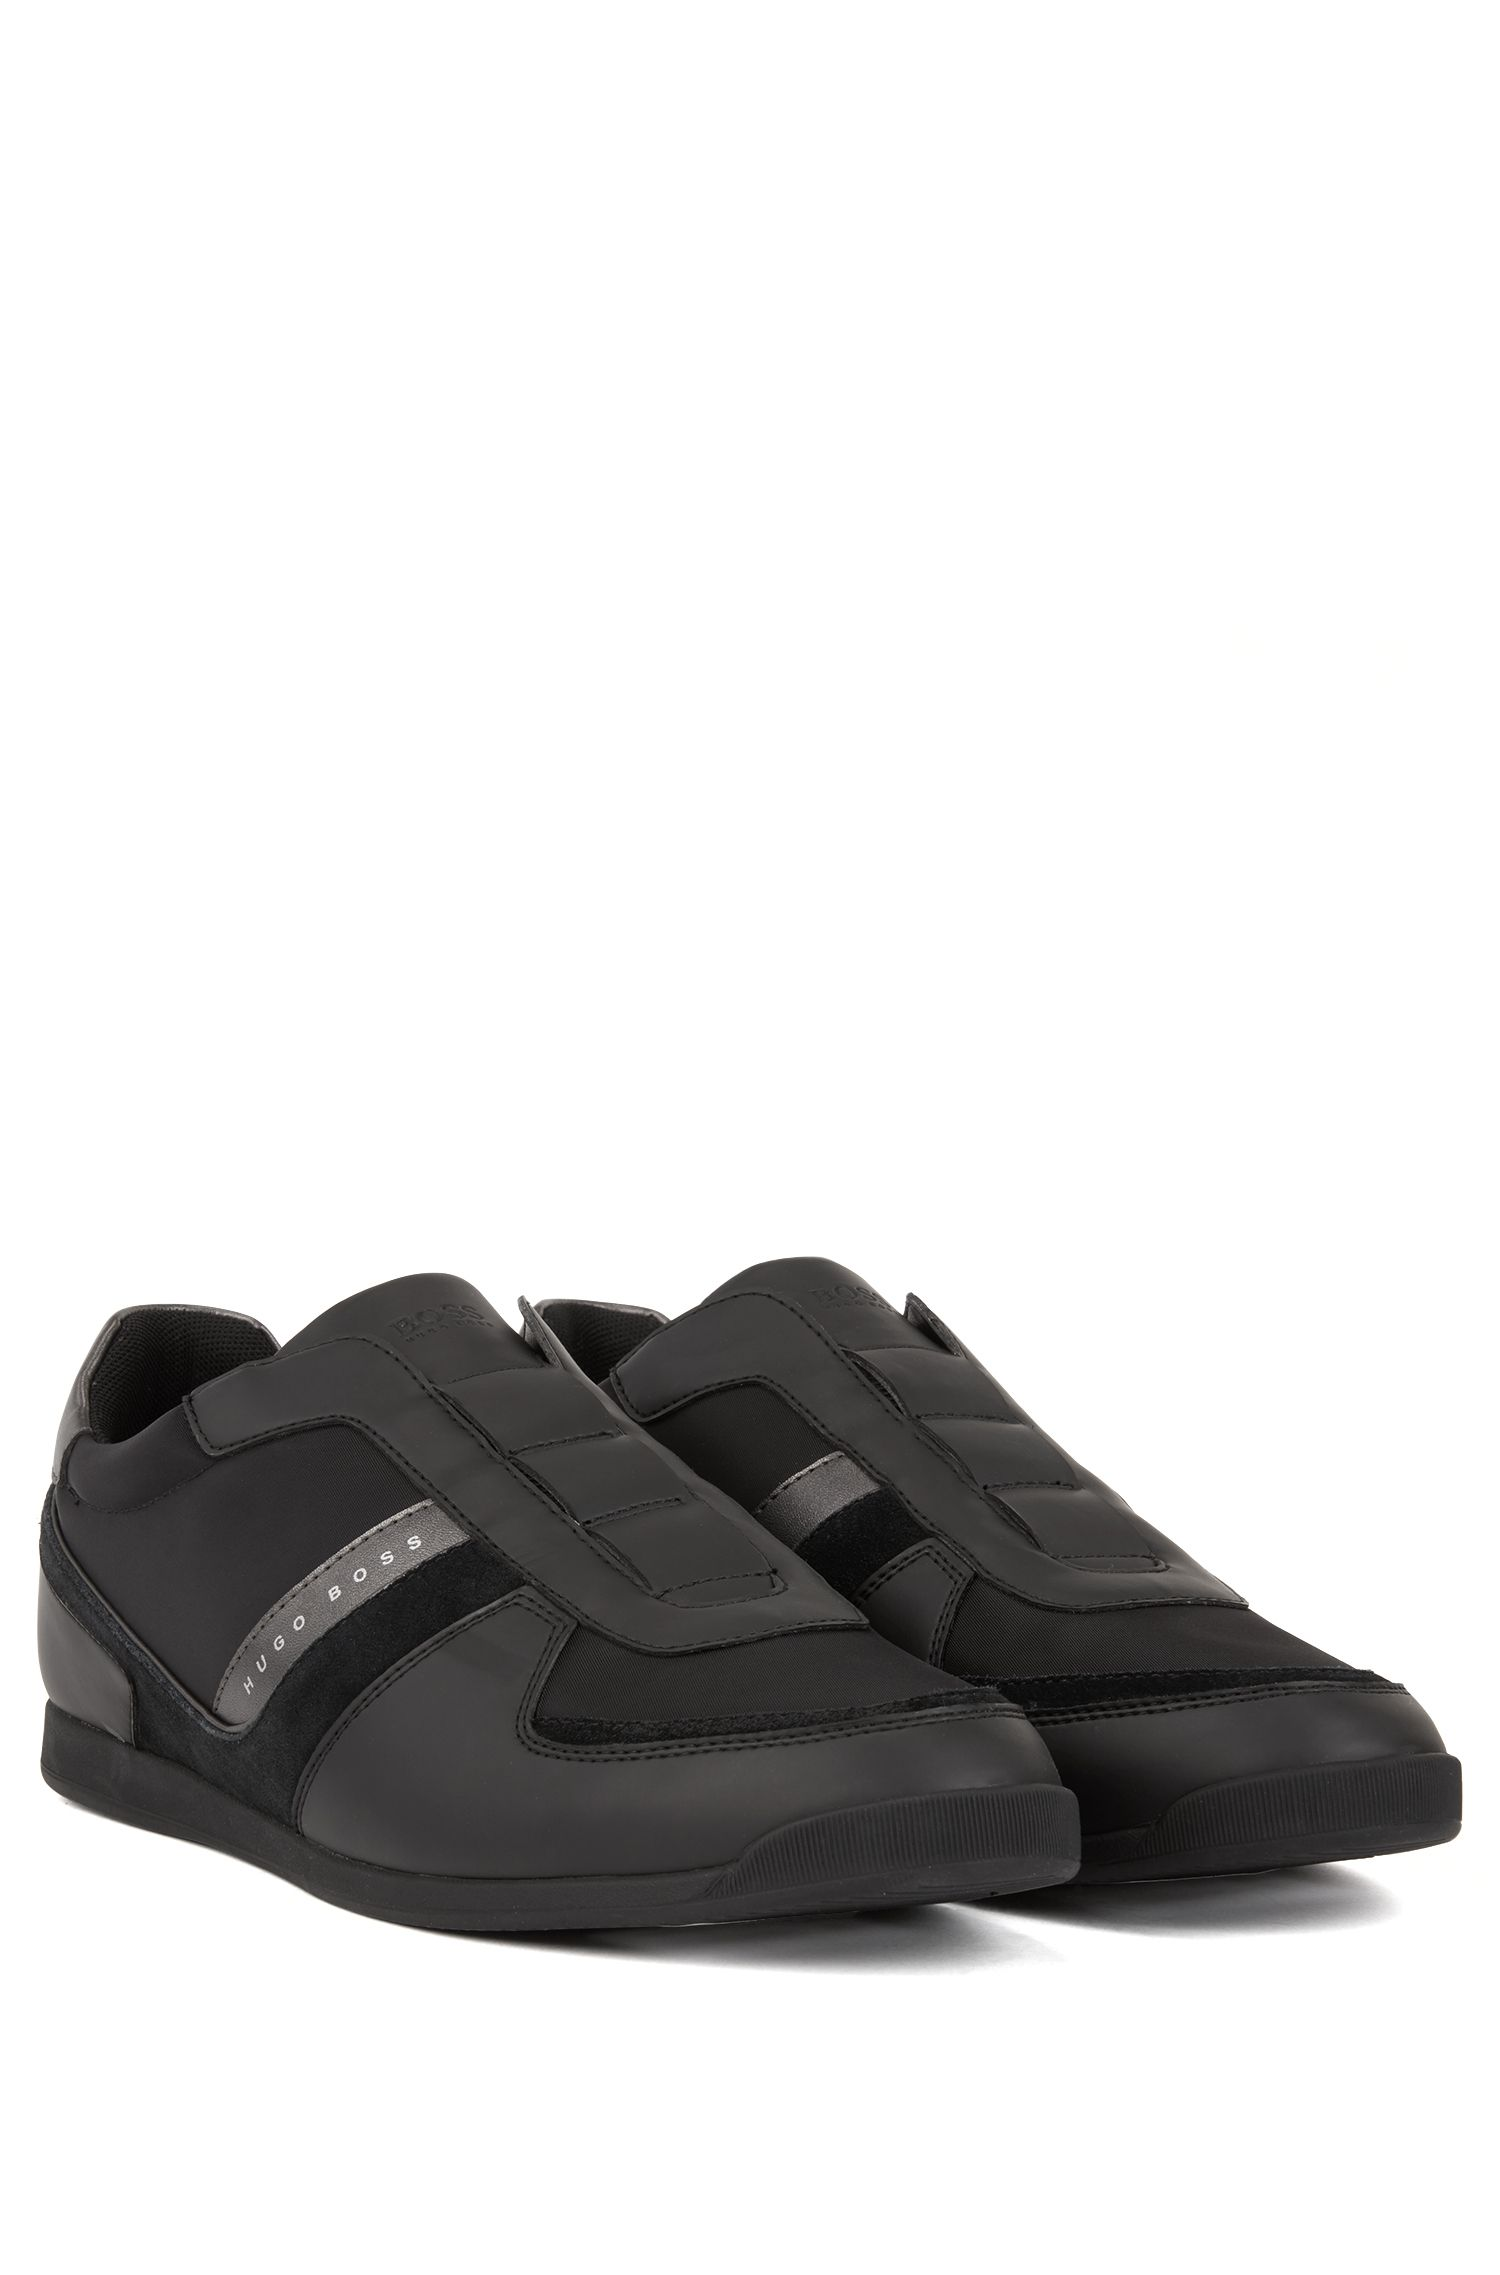 Sneakers low-top con tomaia senza stringhe